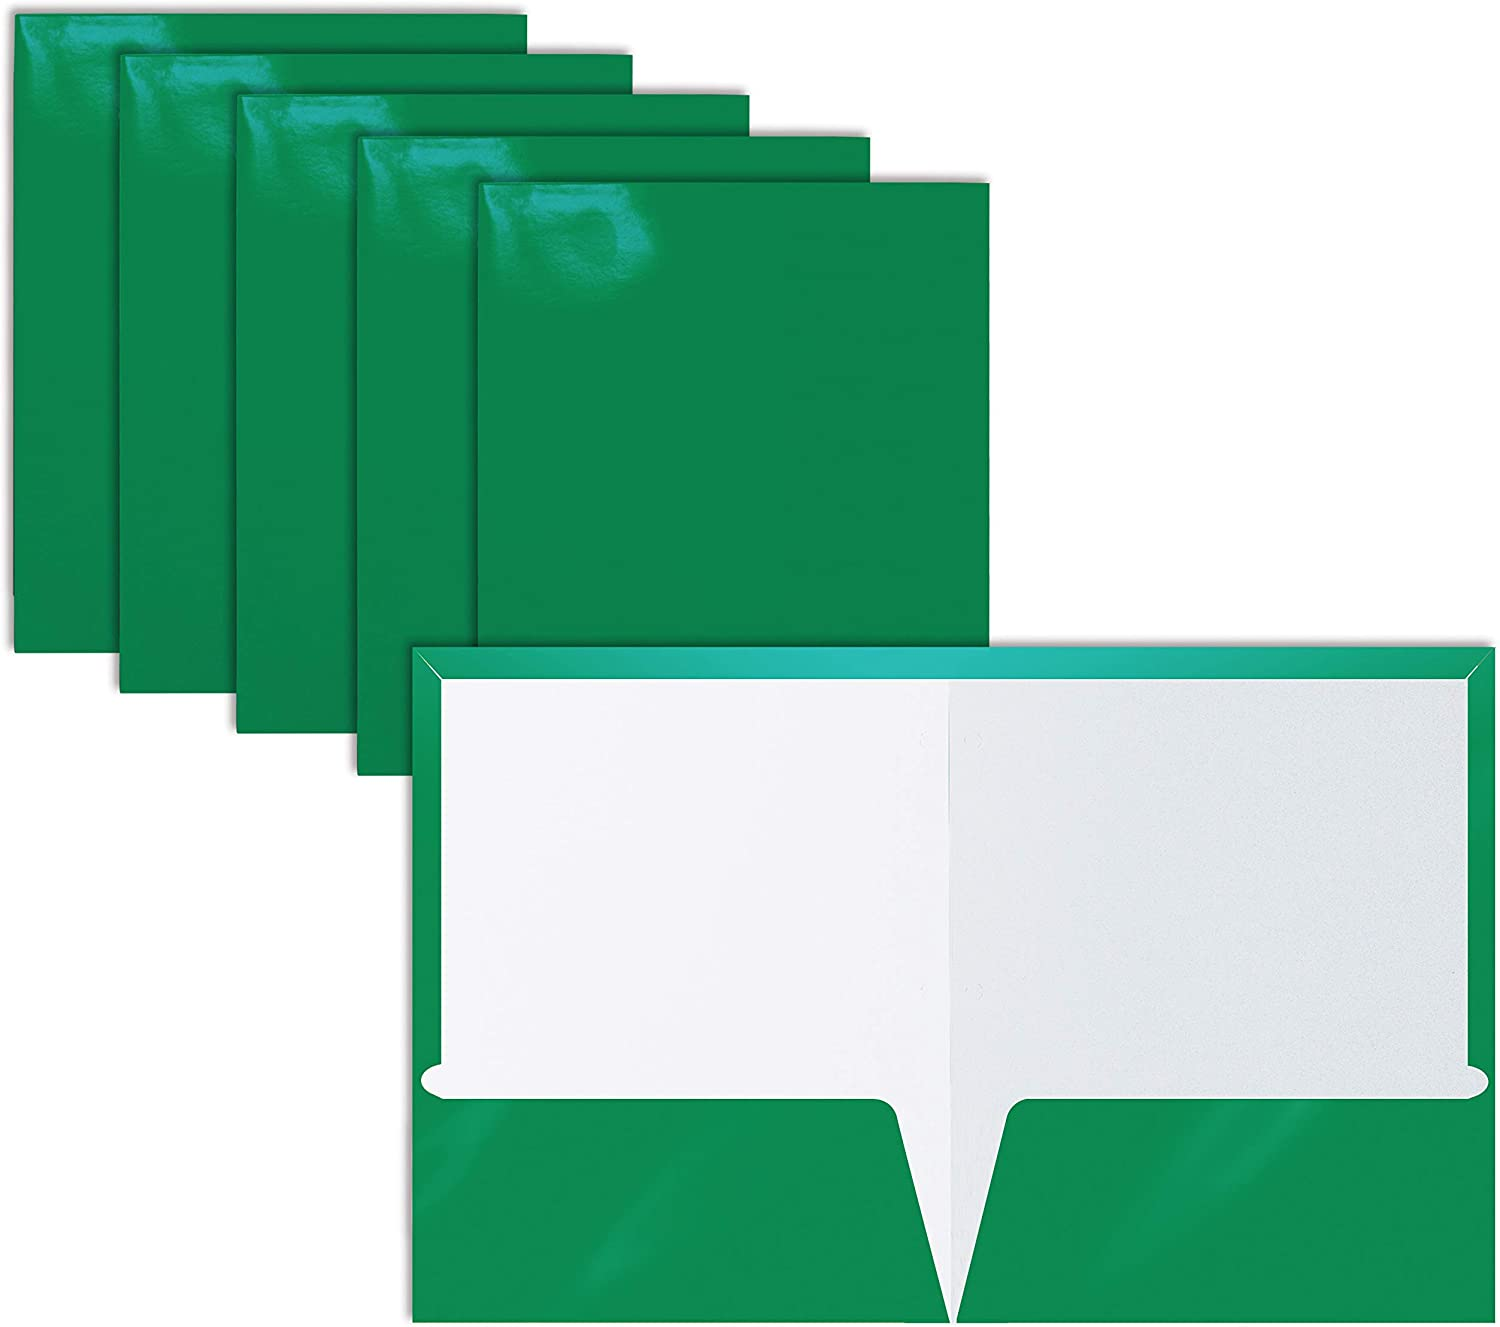 2 Pocket Glossy Laminated Green Paper Folders, Letter Size, 25 Pack, Green Paper Portfolios by Better Office Products, Box of 25 Green Folders